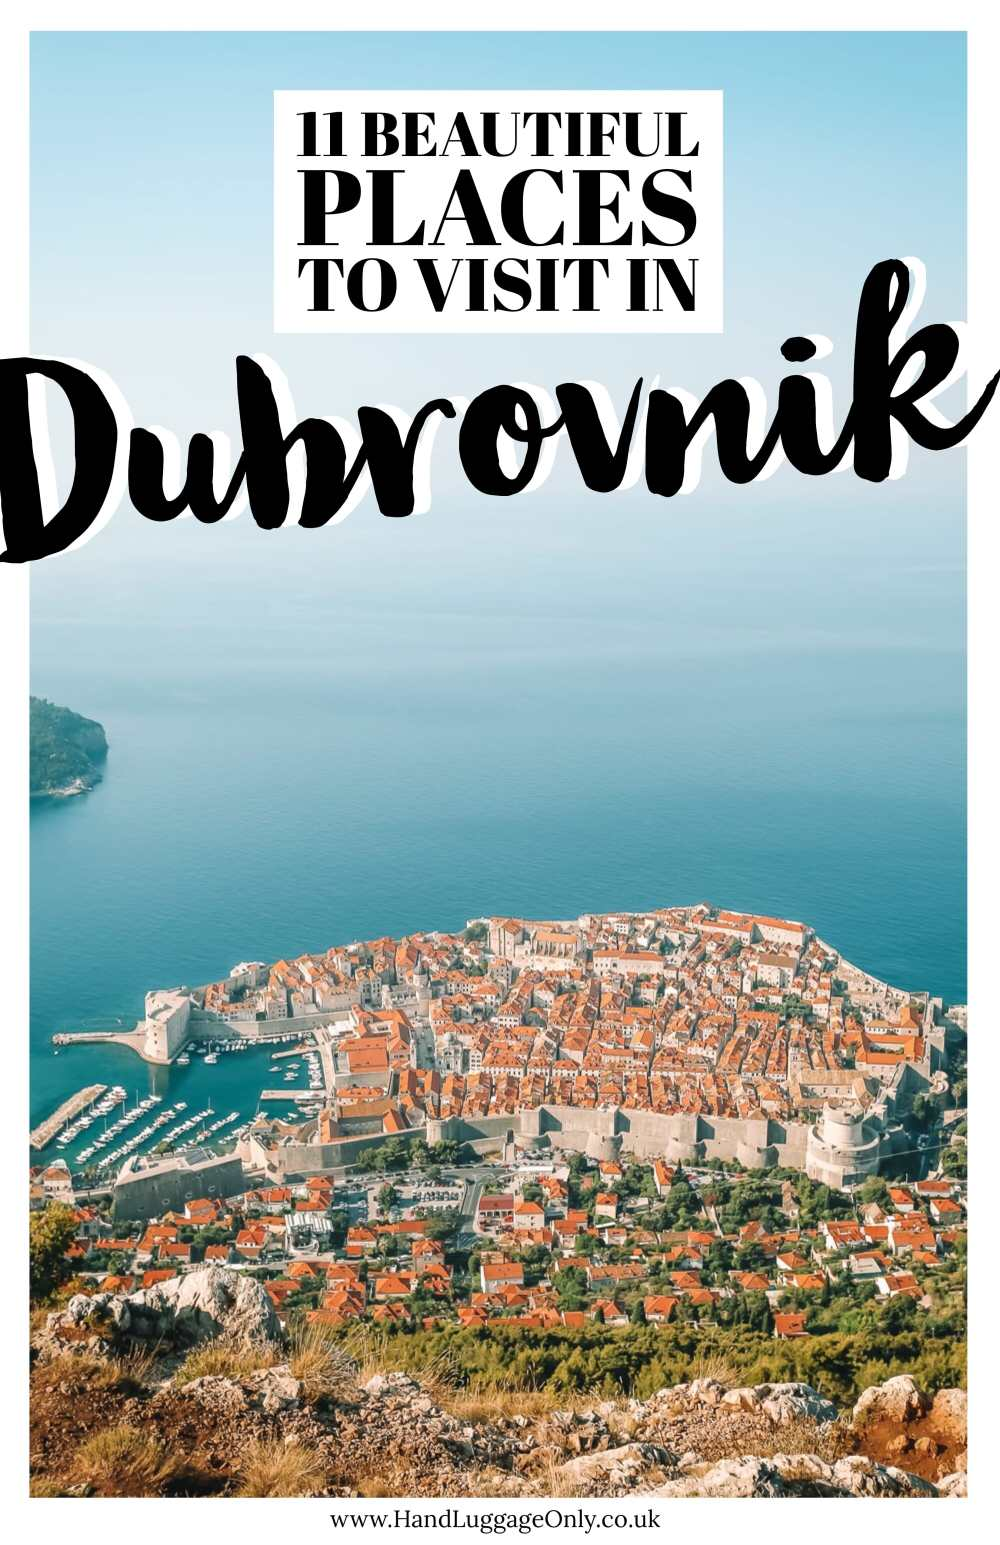 11 Of The Very Best Things To Do In Dubrovnik (1)